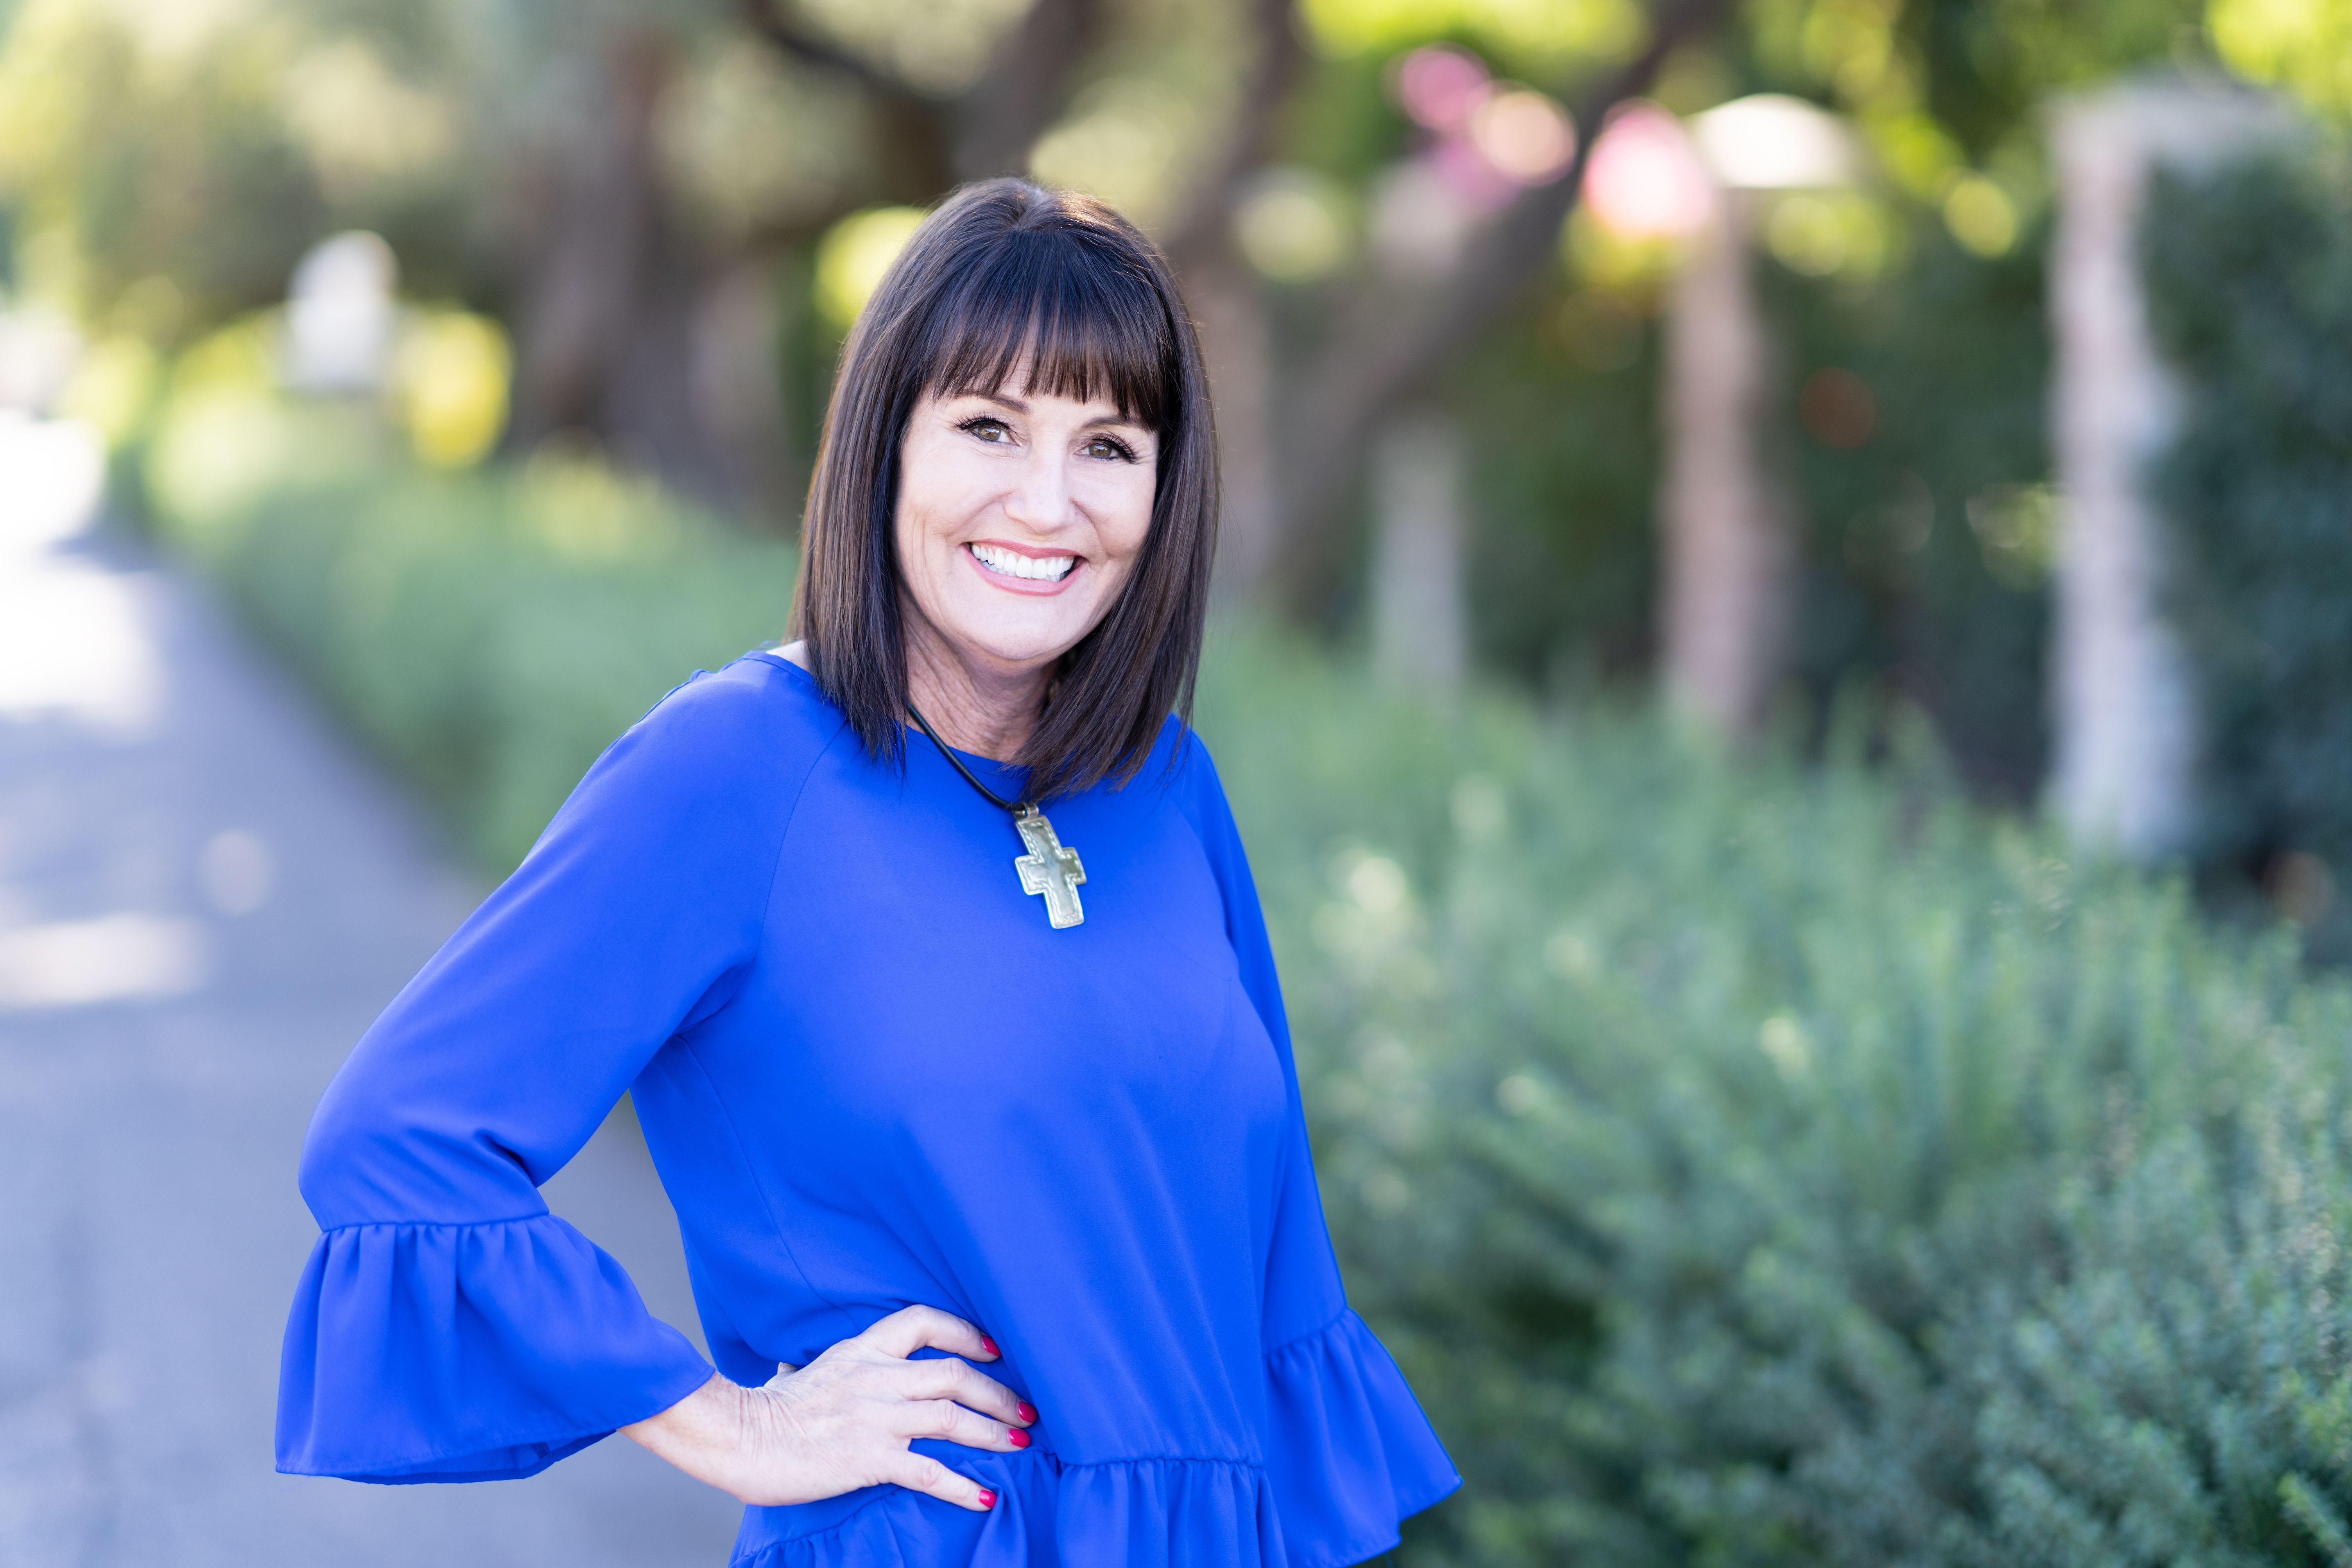 Stacie Lee, a sales associate with Berkshire Hathaway HomeServices in Phoenix